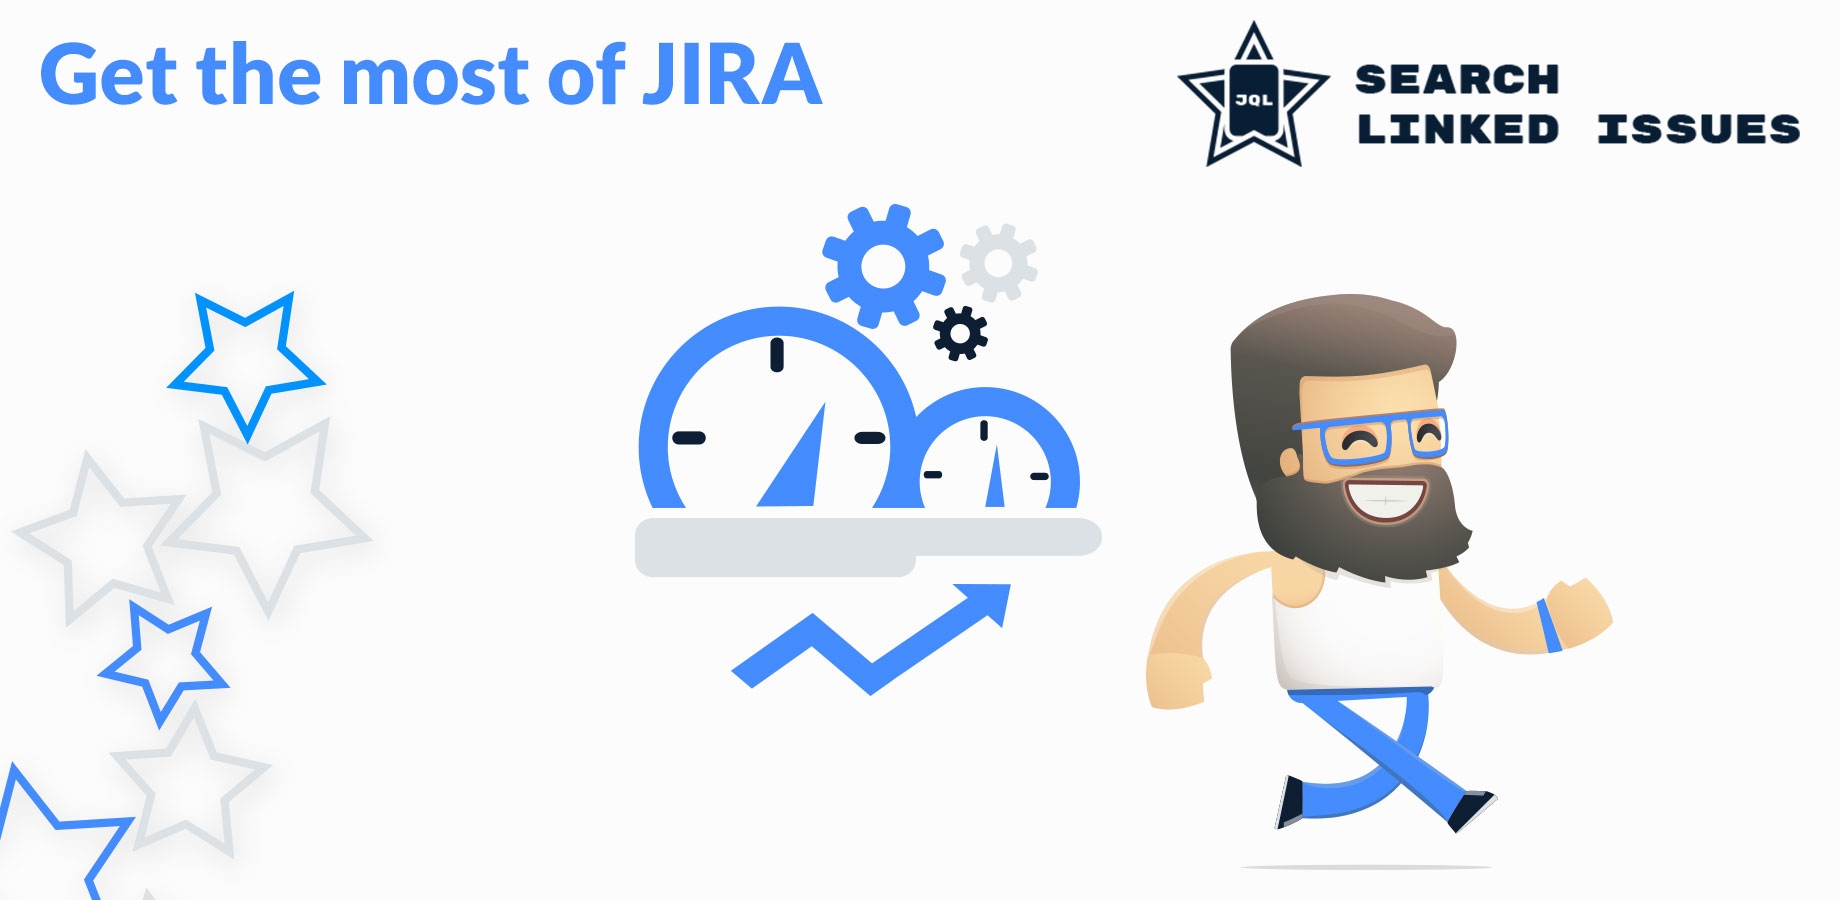 Get the most of JIRA